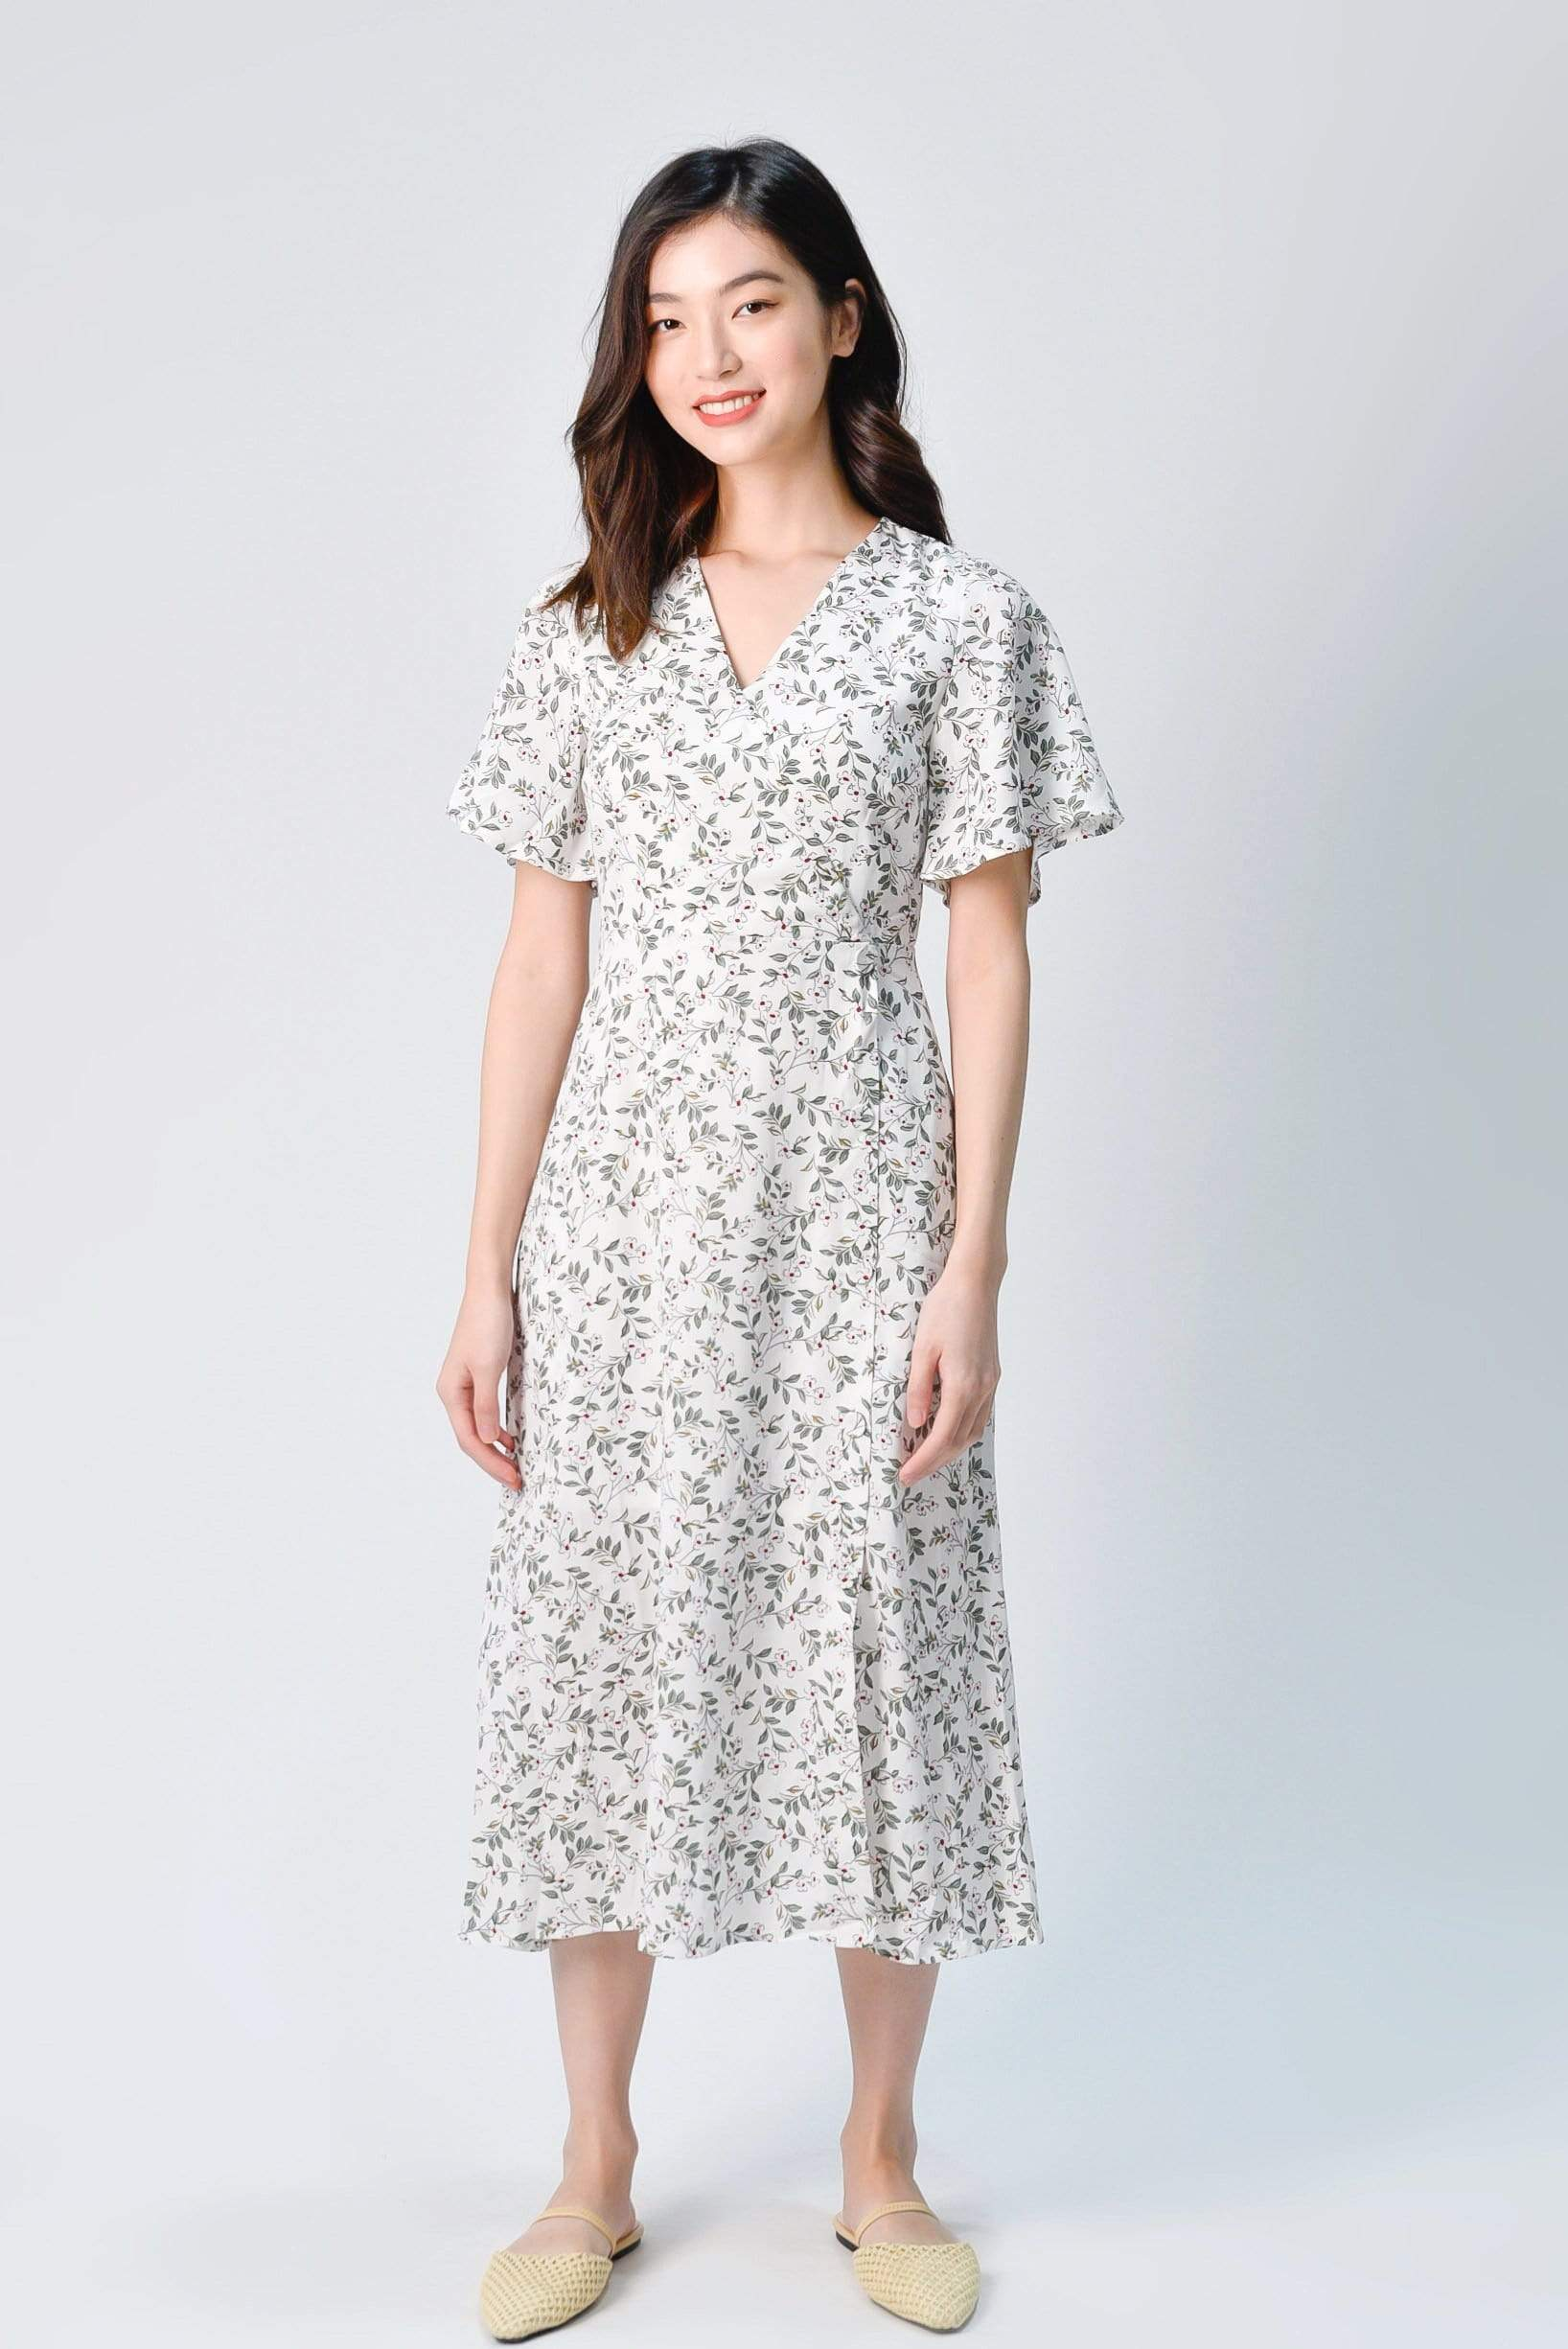 ODELIA FLUTTER SLEEVE DRESS IN WHITE FLORAL